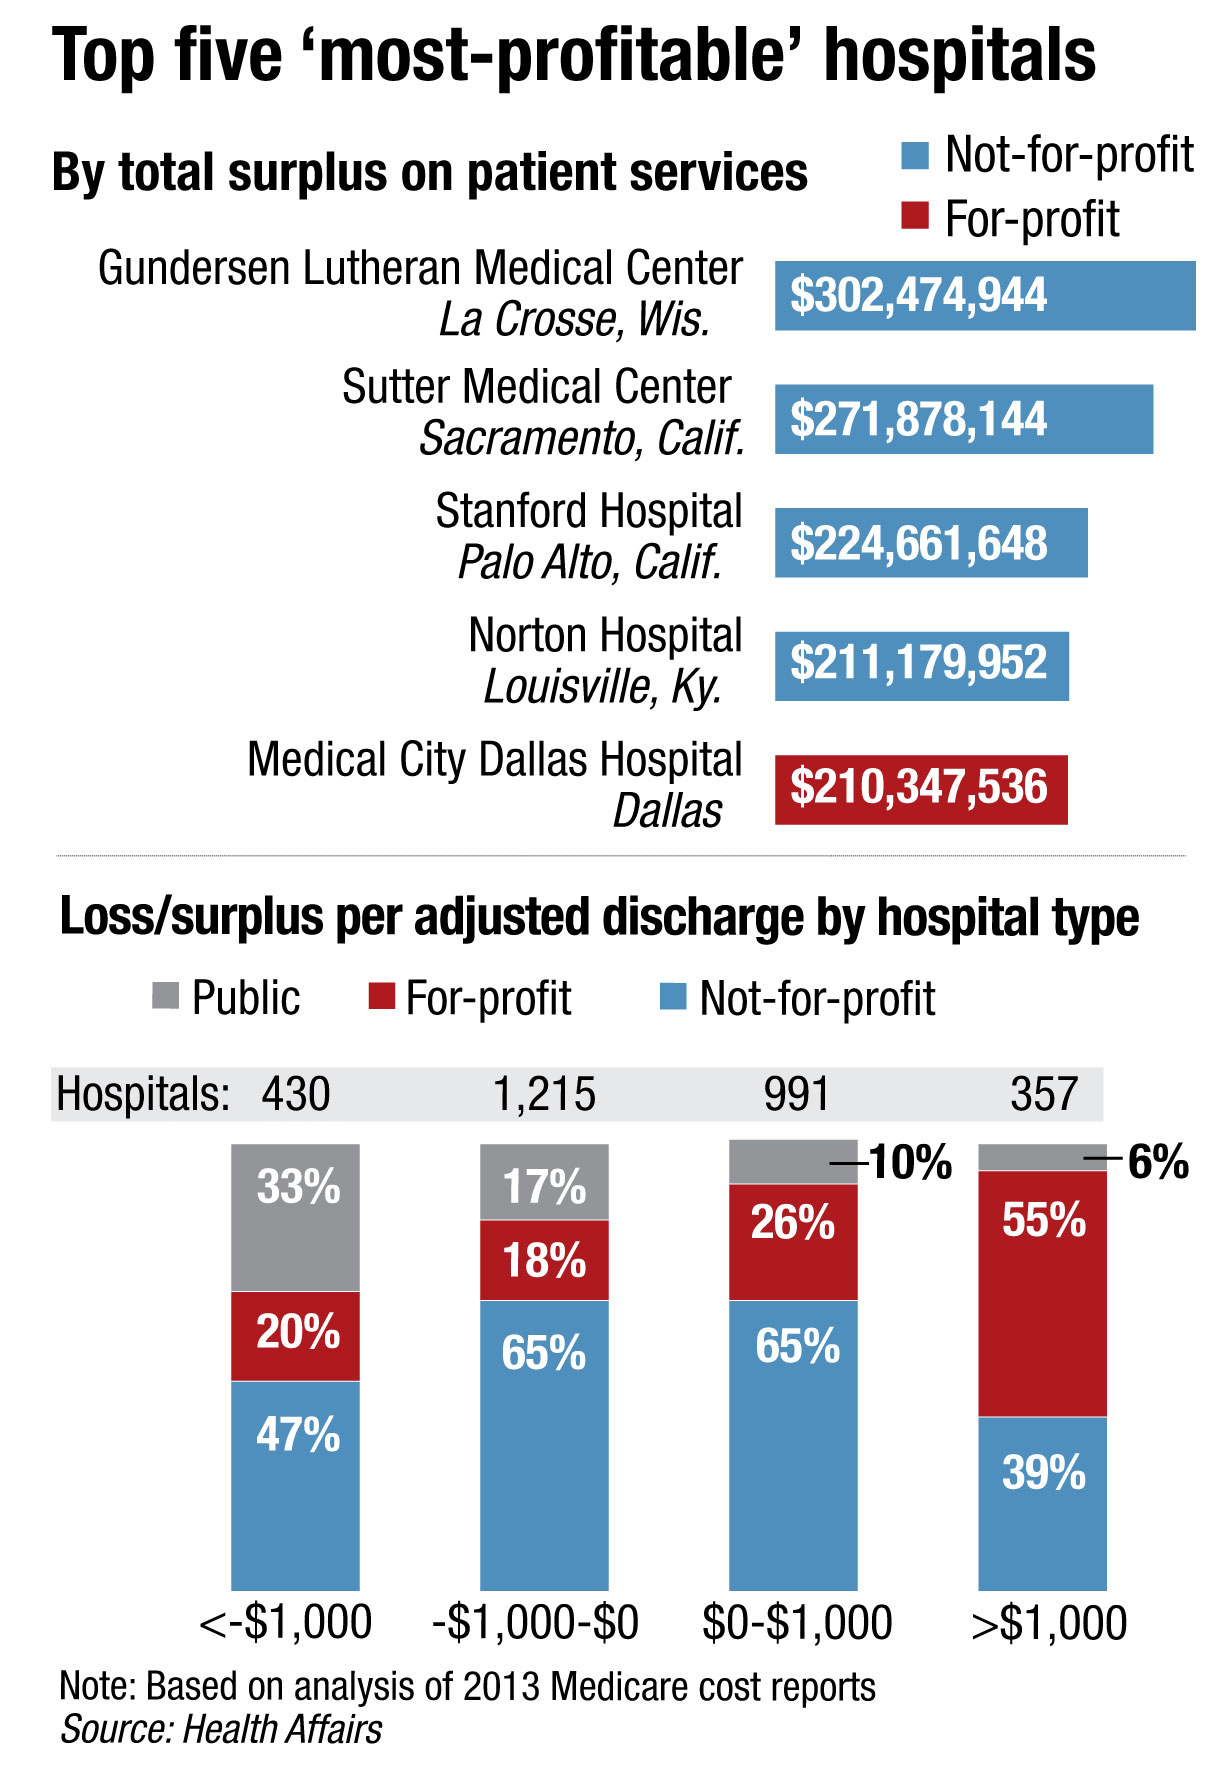 Top five most profitable hospitals